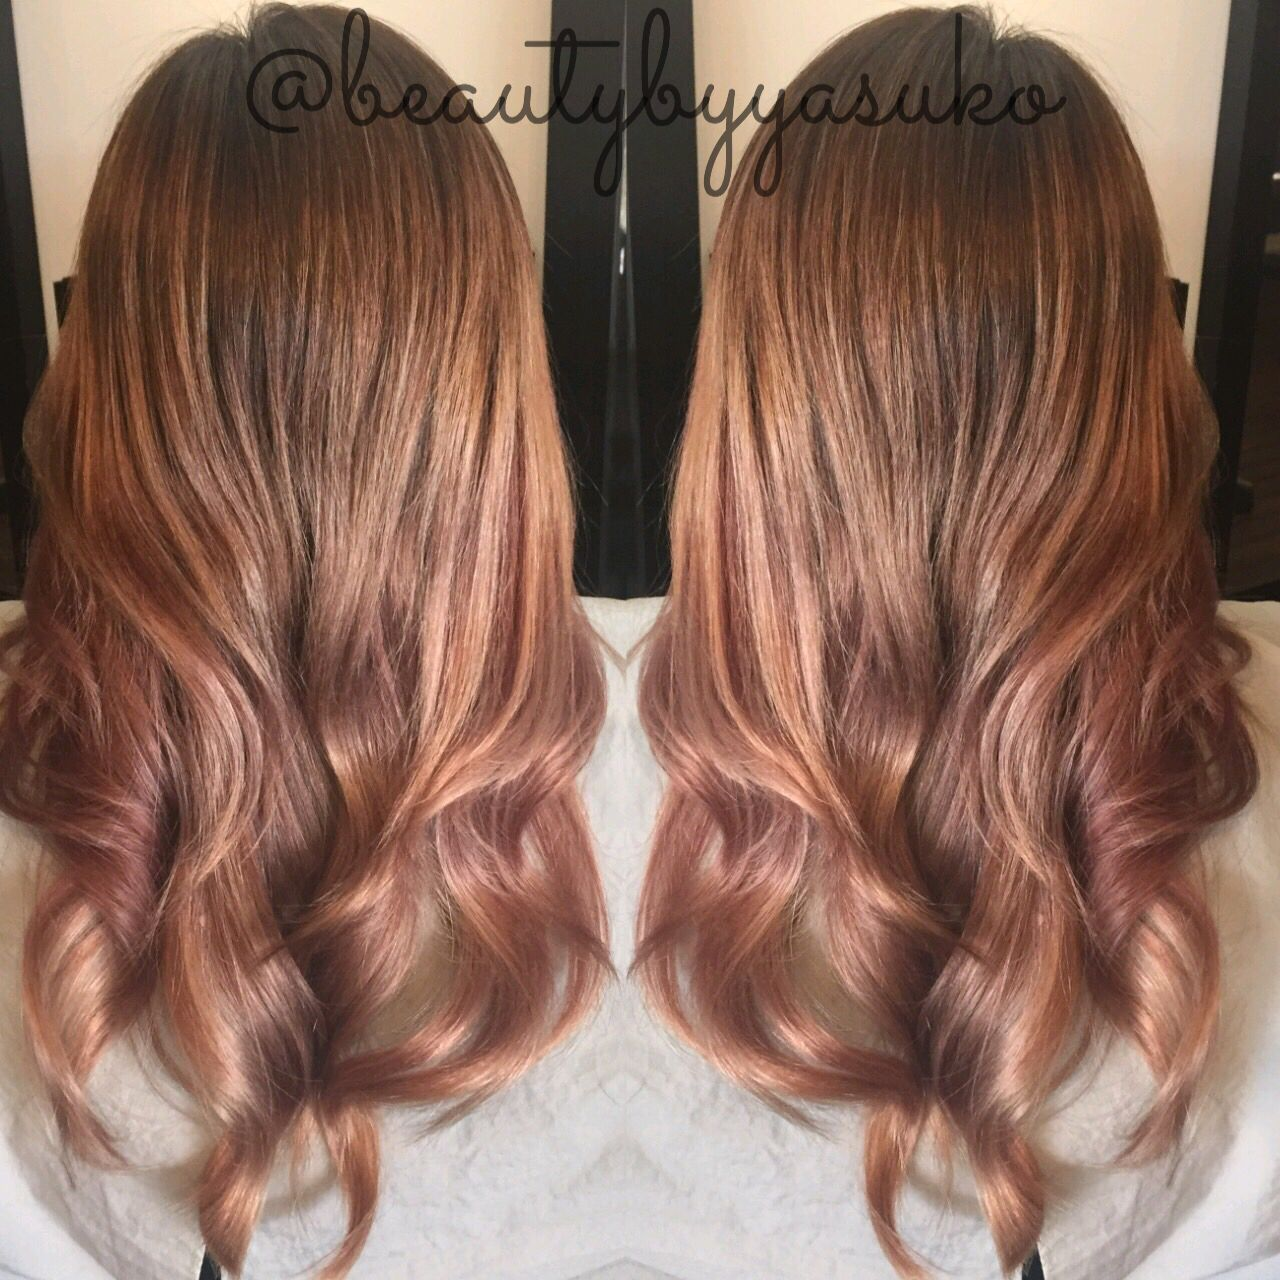 Caramel Salon Transitioning From Rose Gold Hair To Caramel Hair Color By